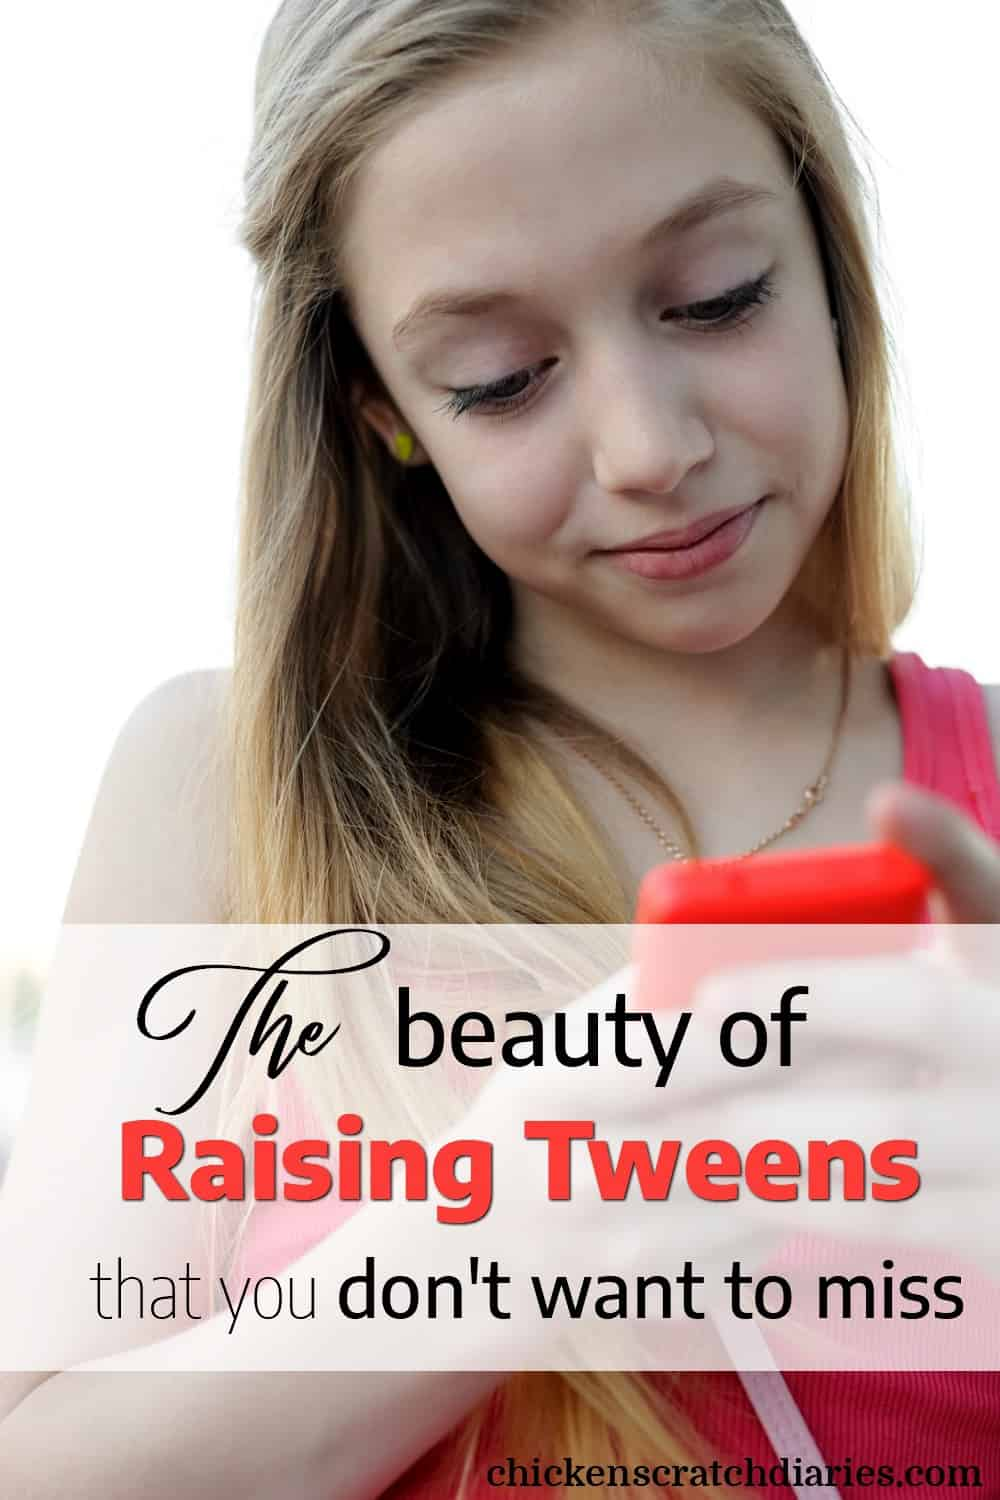 Parenting tween girls presents challenges, but don't miss out on the great things you get to enjoy in this unique stage - the tween years. #Tweens #Parenting #Faith #ChristianMom #Preteen